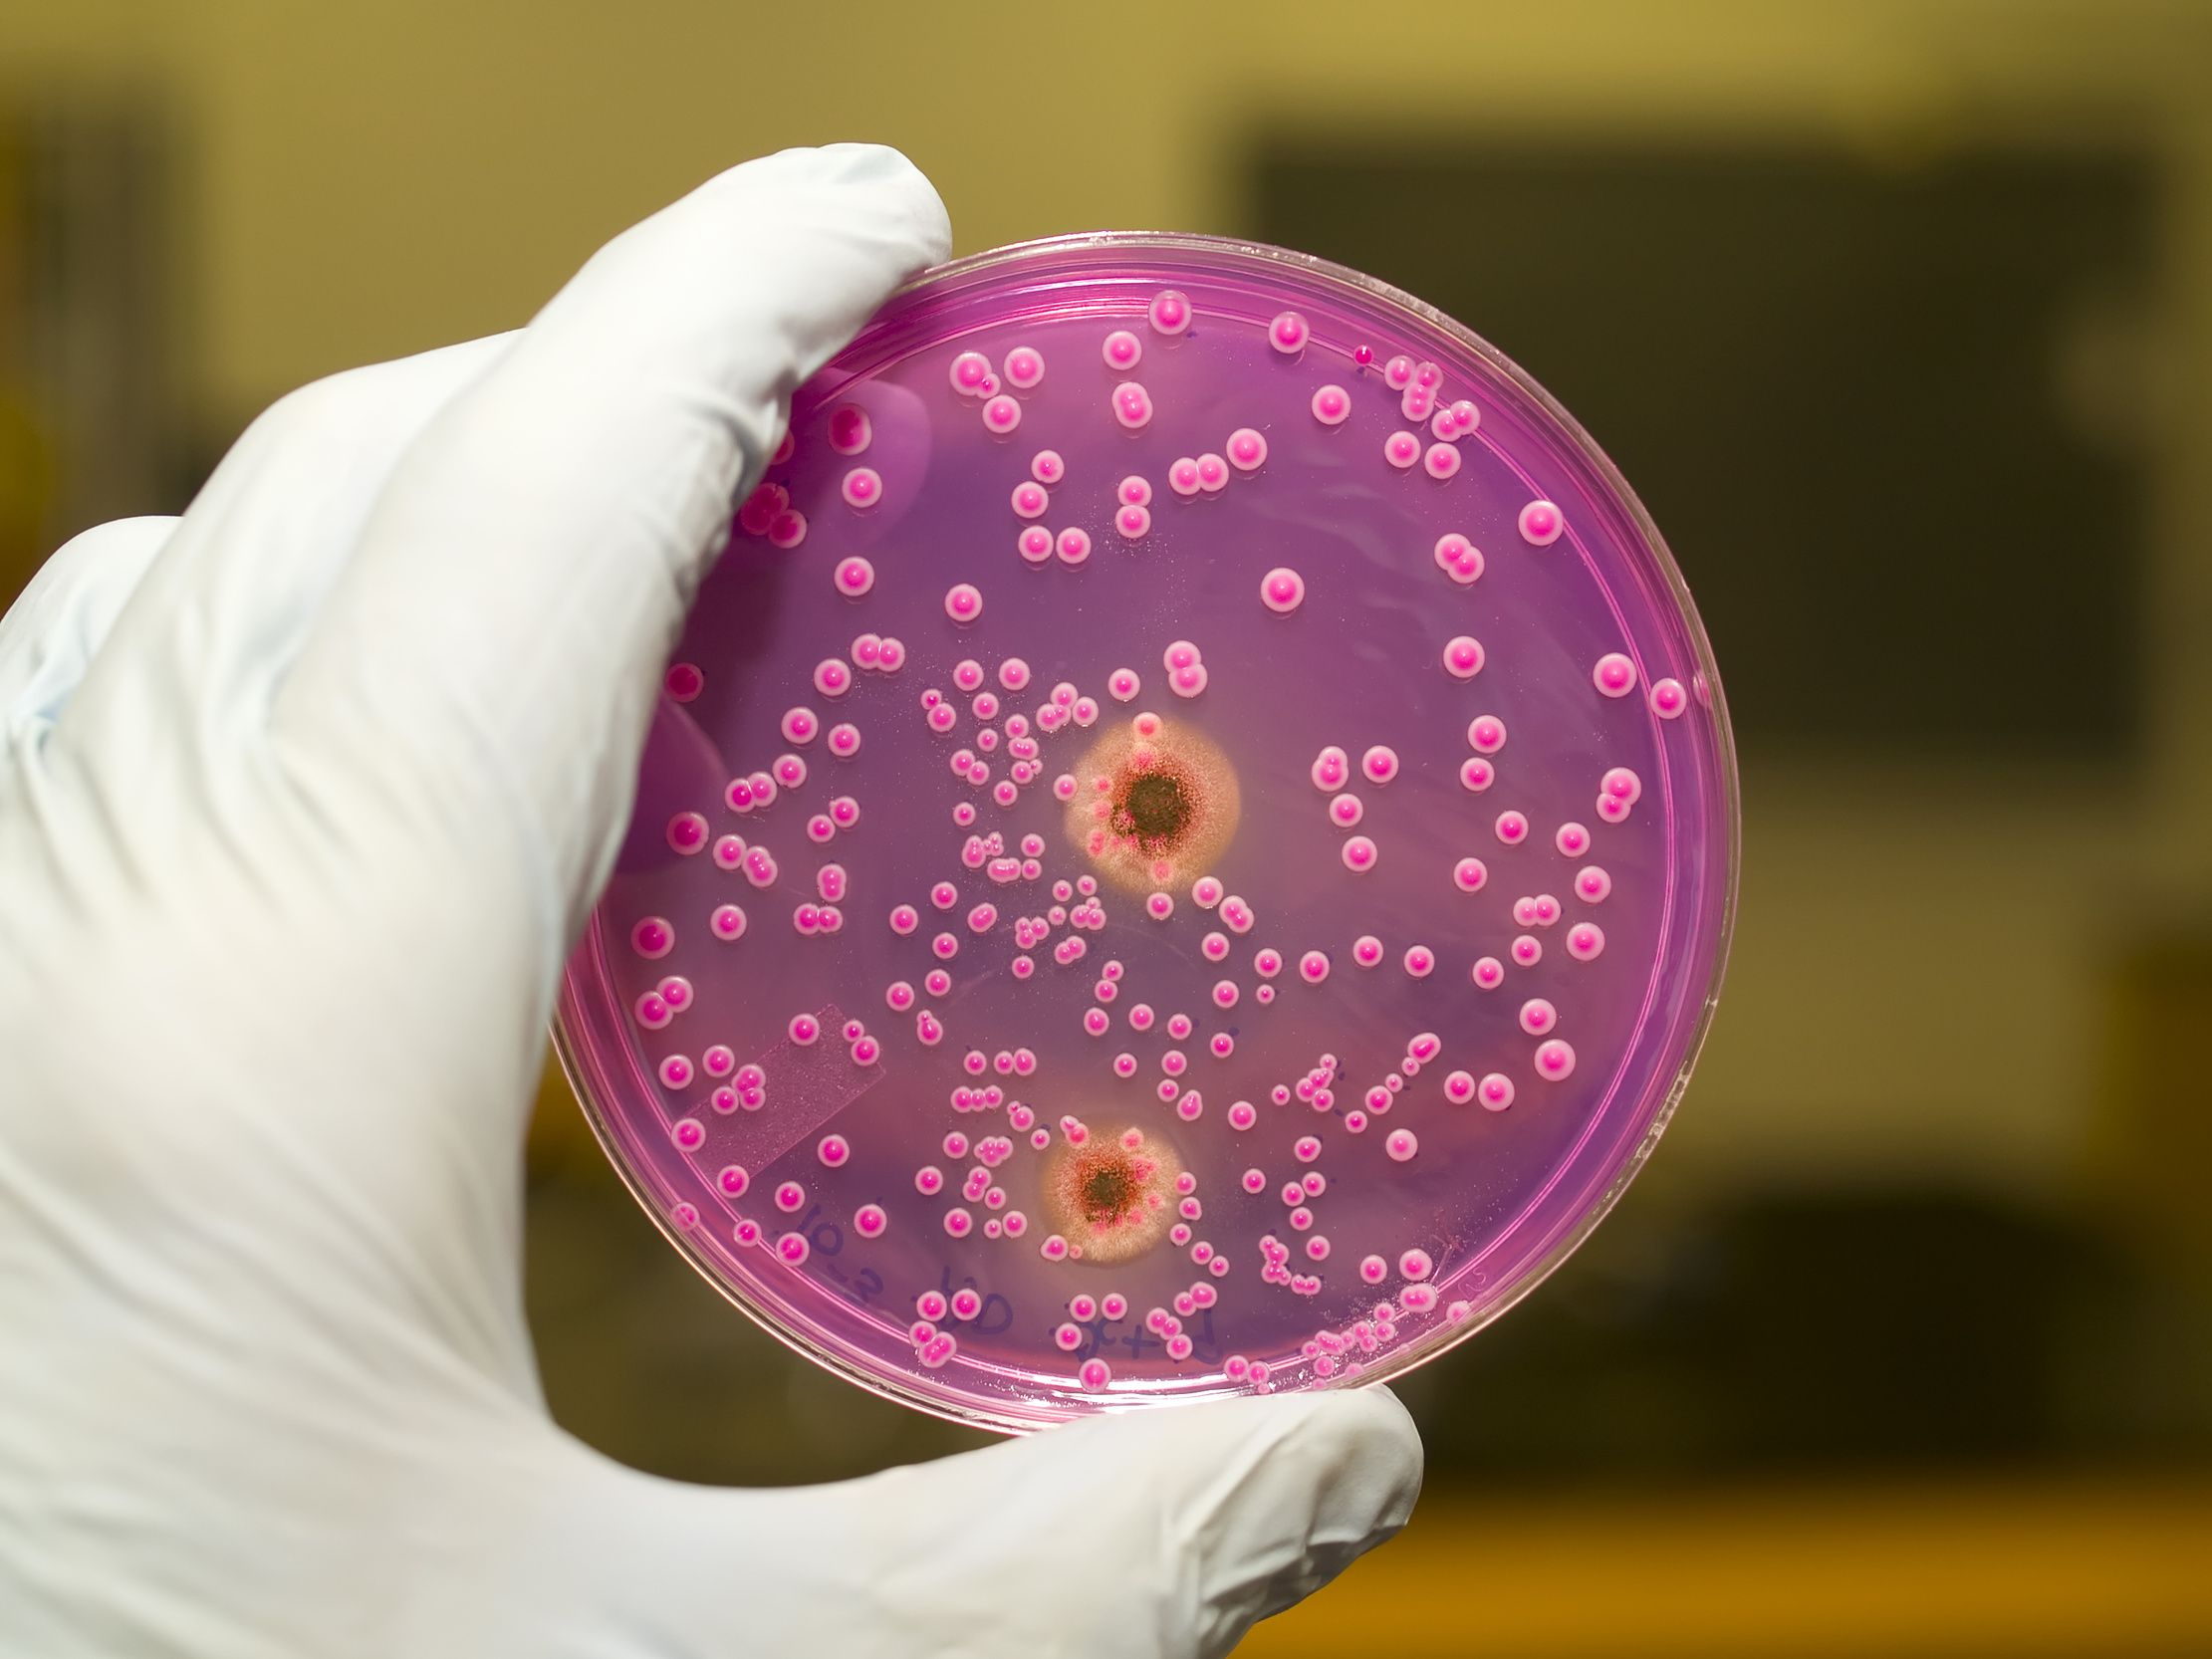 Infection from saliva yeast Yeast infection